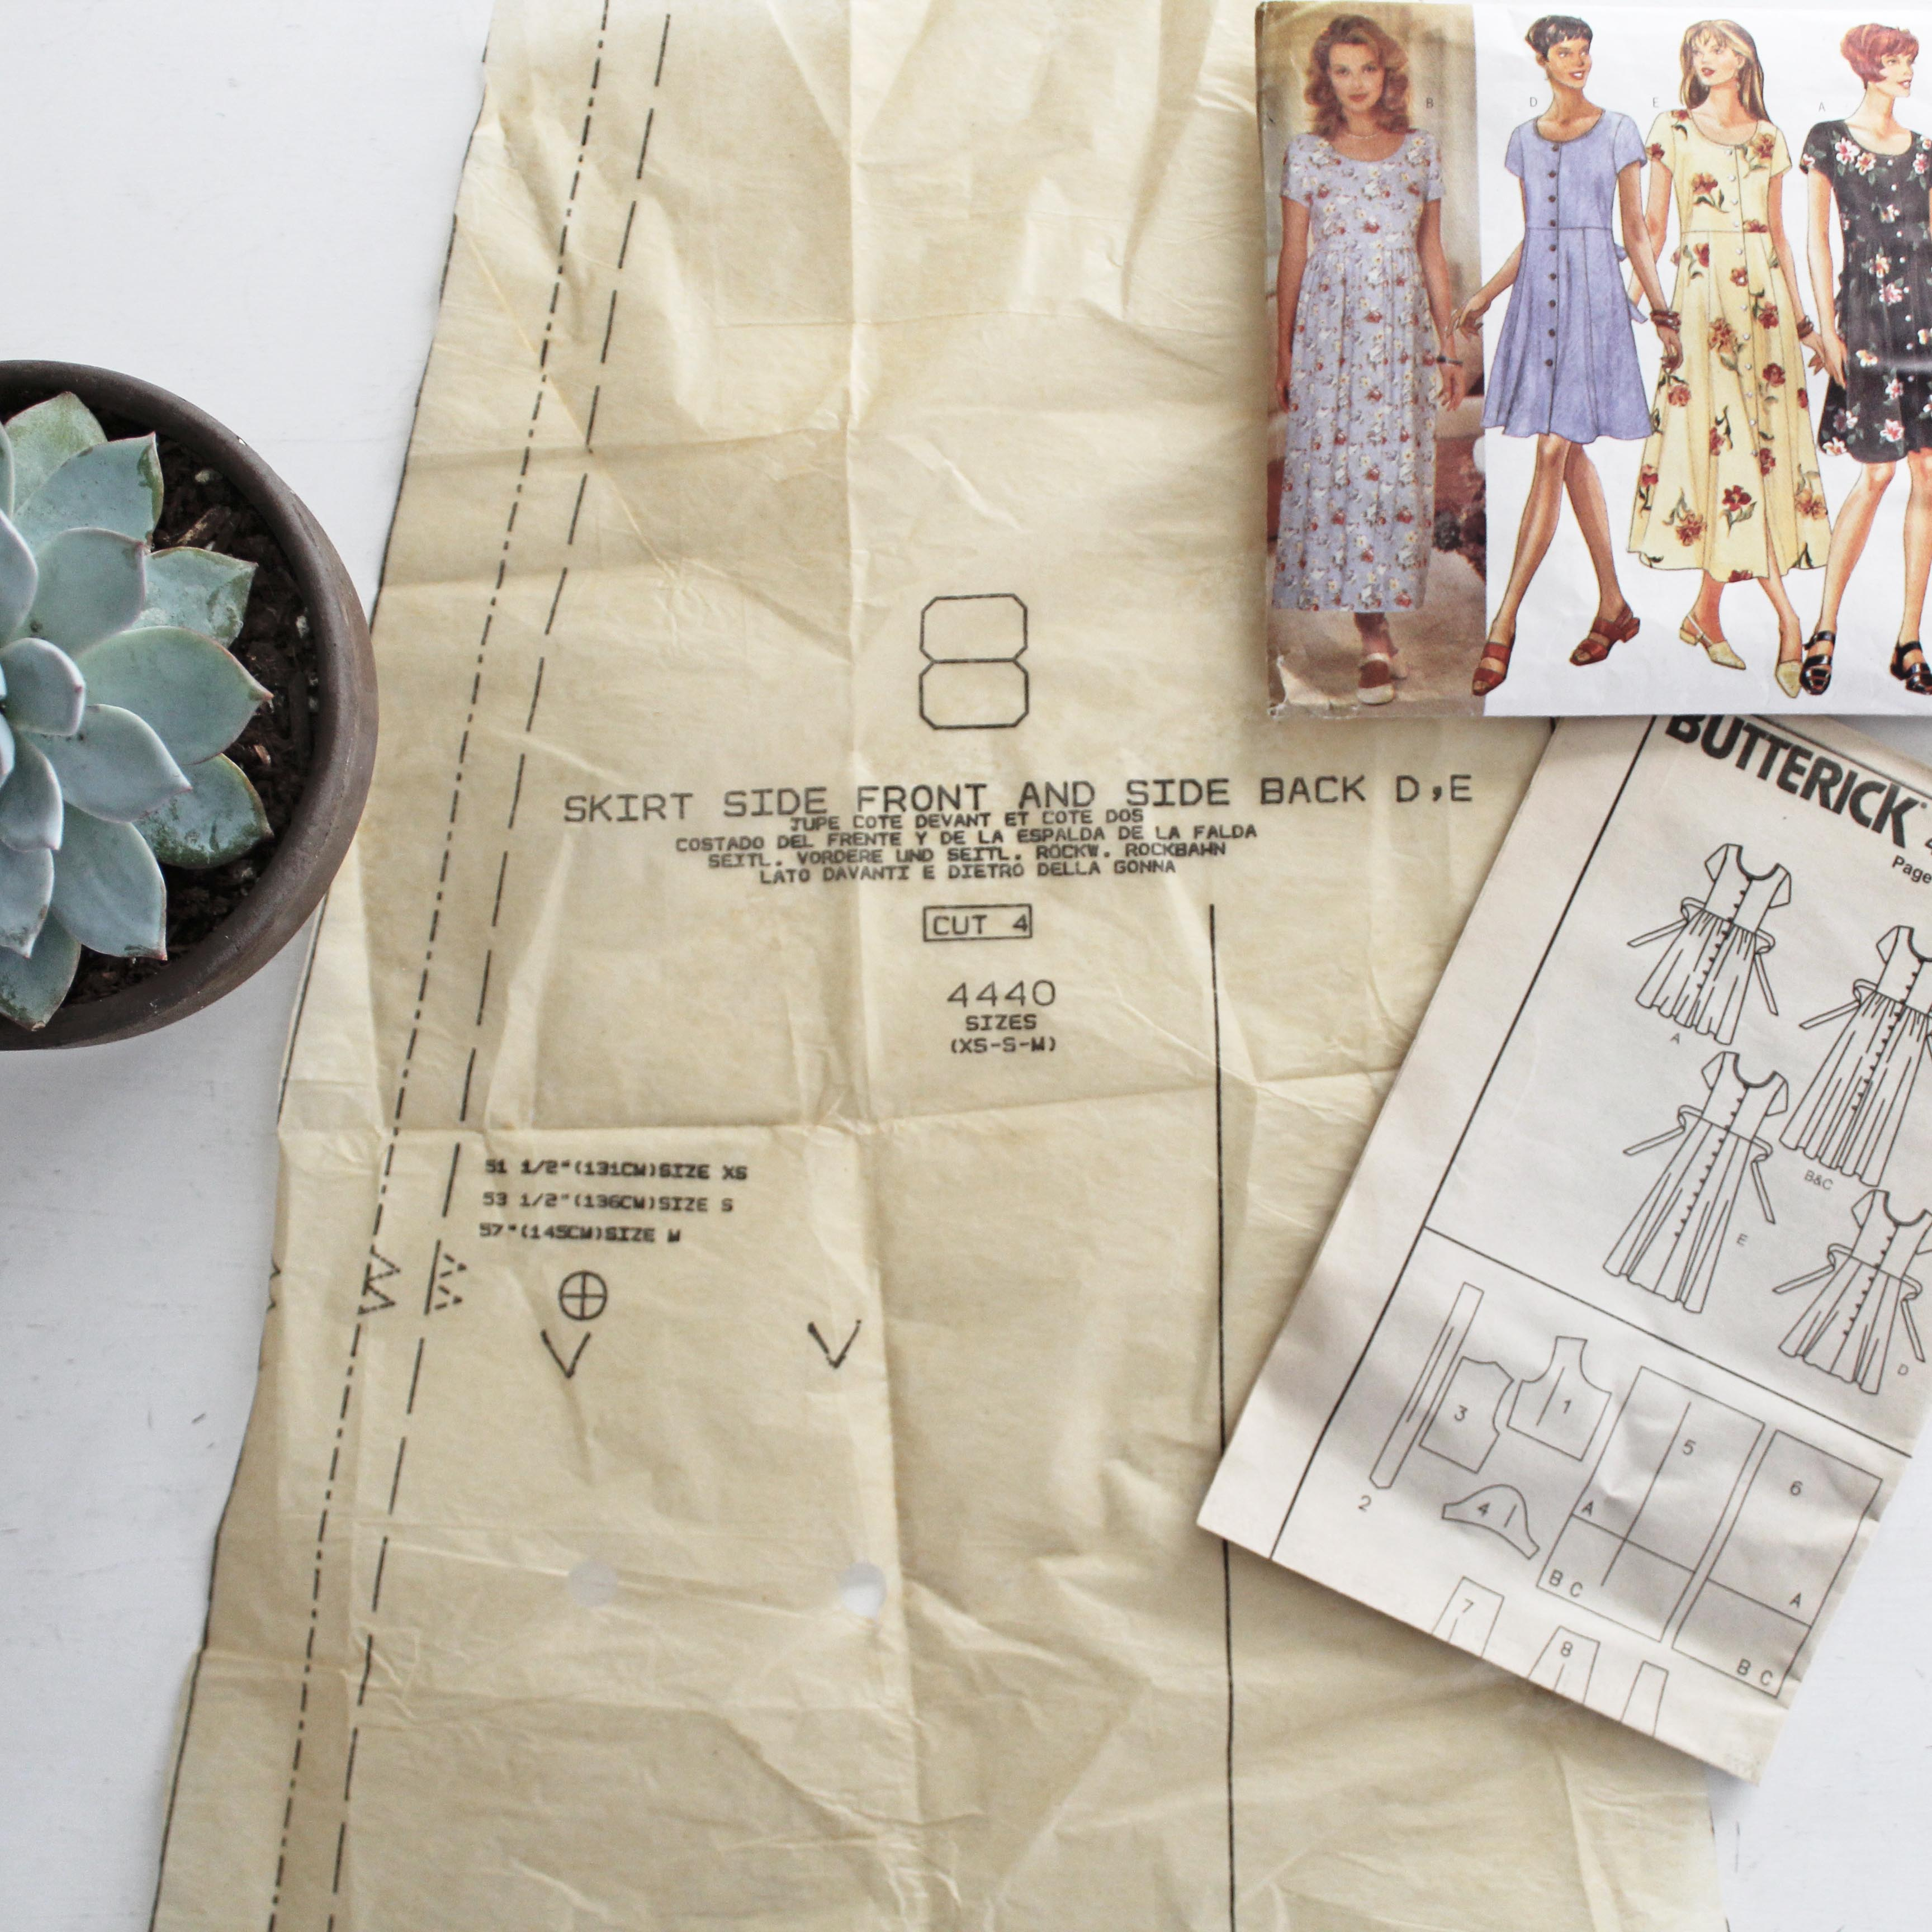 How To Read A Sewing Pattern Final Layout